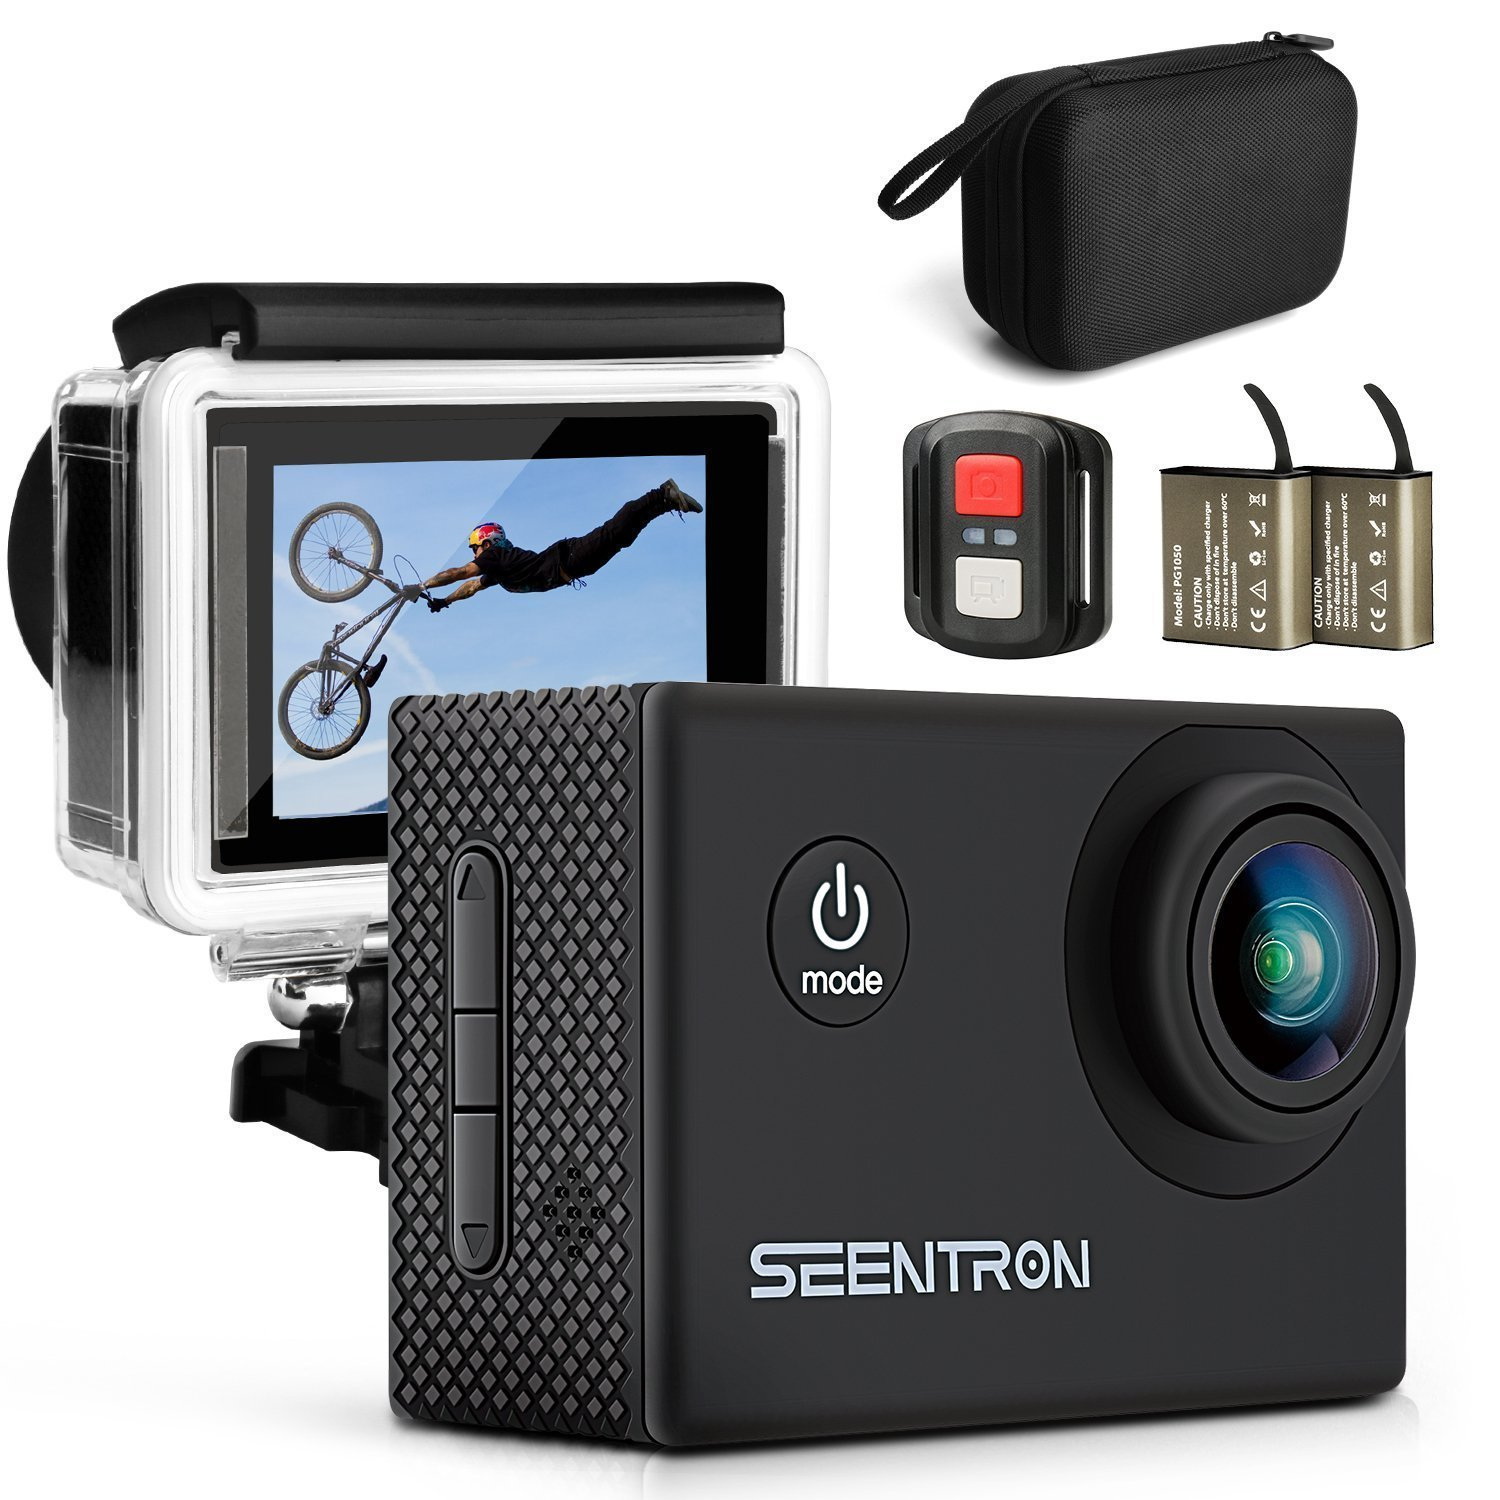 SEENTRON 4K WIFI HD Action Camera Review